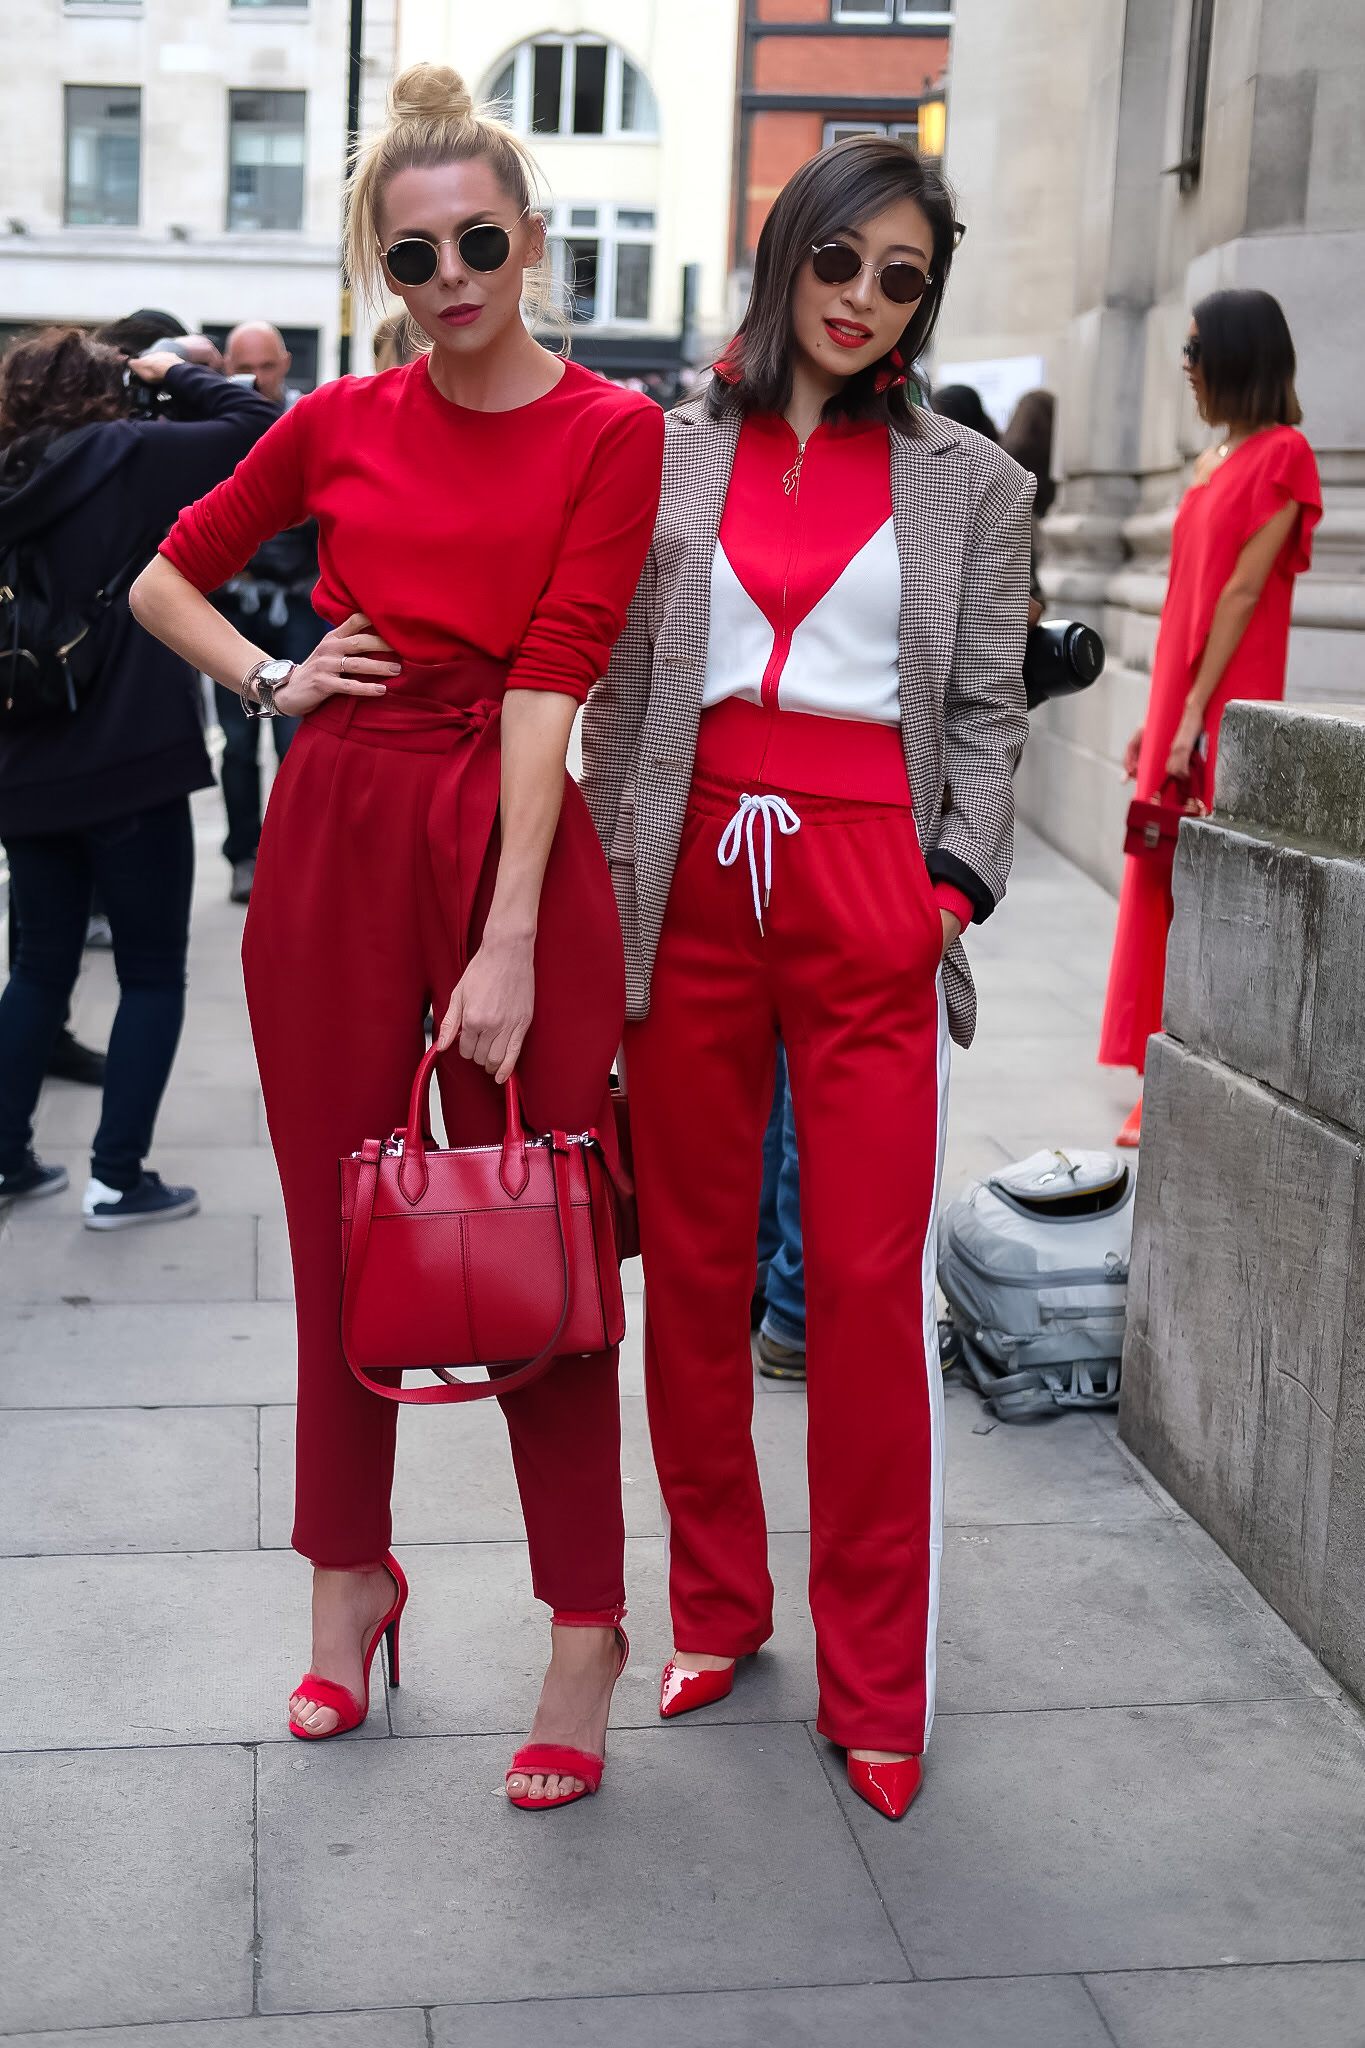 london fashion week, AW17, LFW 17. haul, affordable fashion, streetstyle, inspiration, what to wear, fashion, lookbook, style, fashion blogger, laura blair, youtuber, london fashion girl,